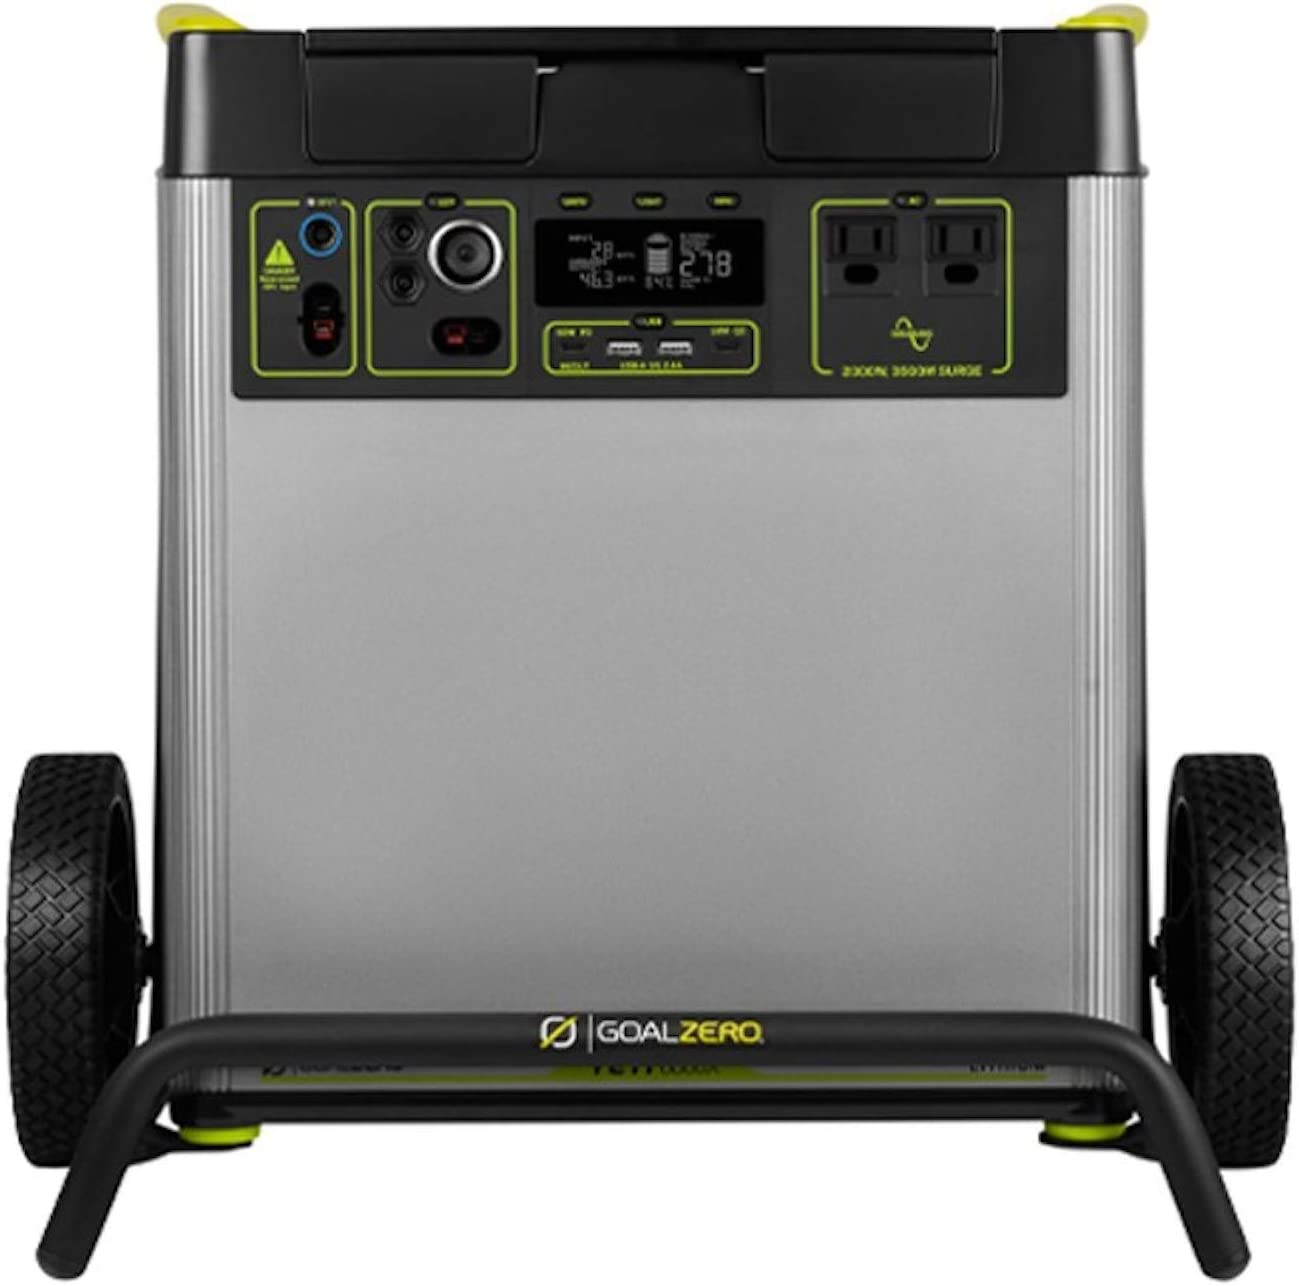 Yeti 6000X Portable Power Station, 6071Wh Portable Lithium Battery, 2000W AC Inverter Generator, Backup Power Supply Generators for Home Use, Solar Generator for Outdoor and Emergency Power Use